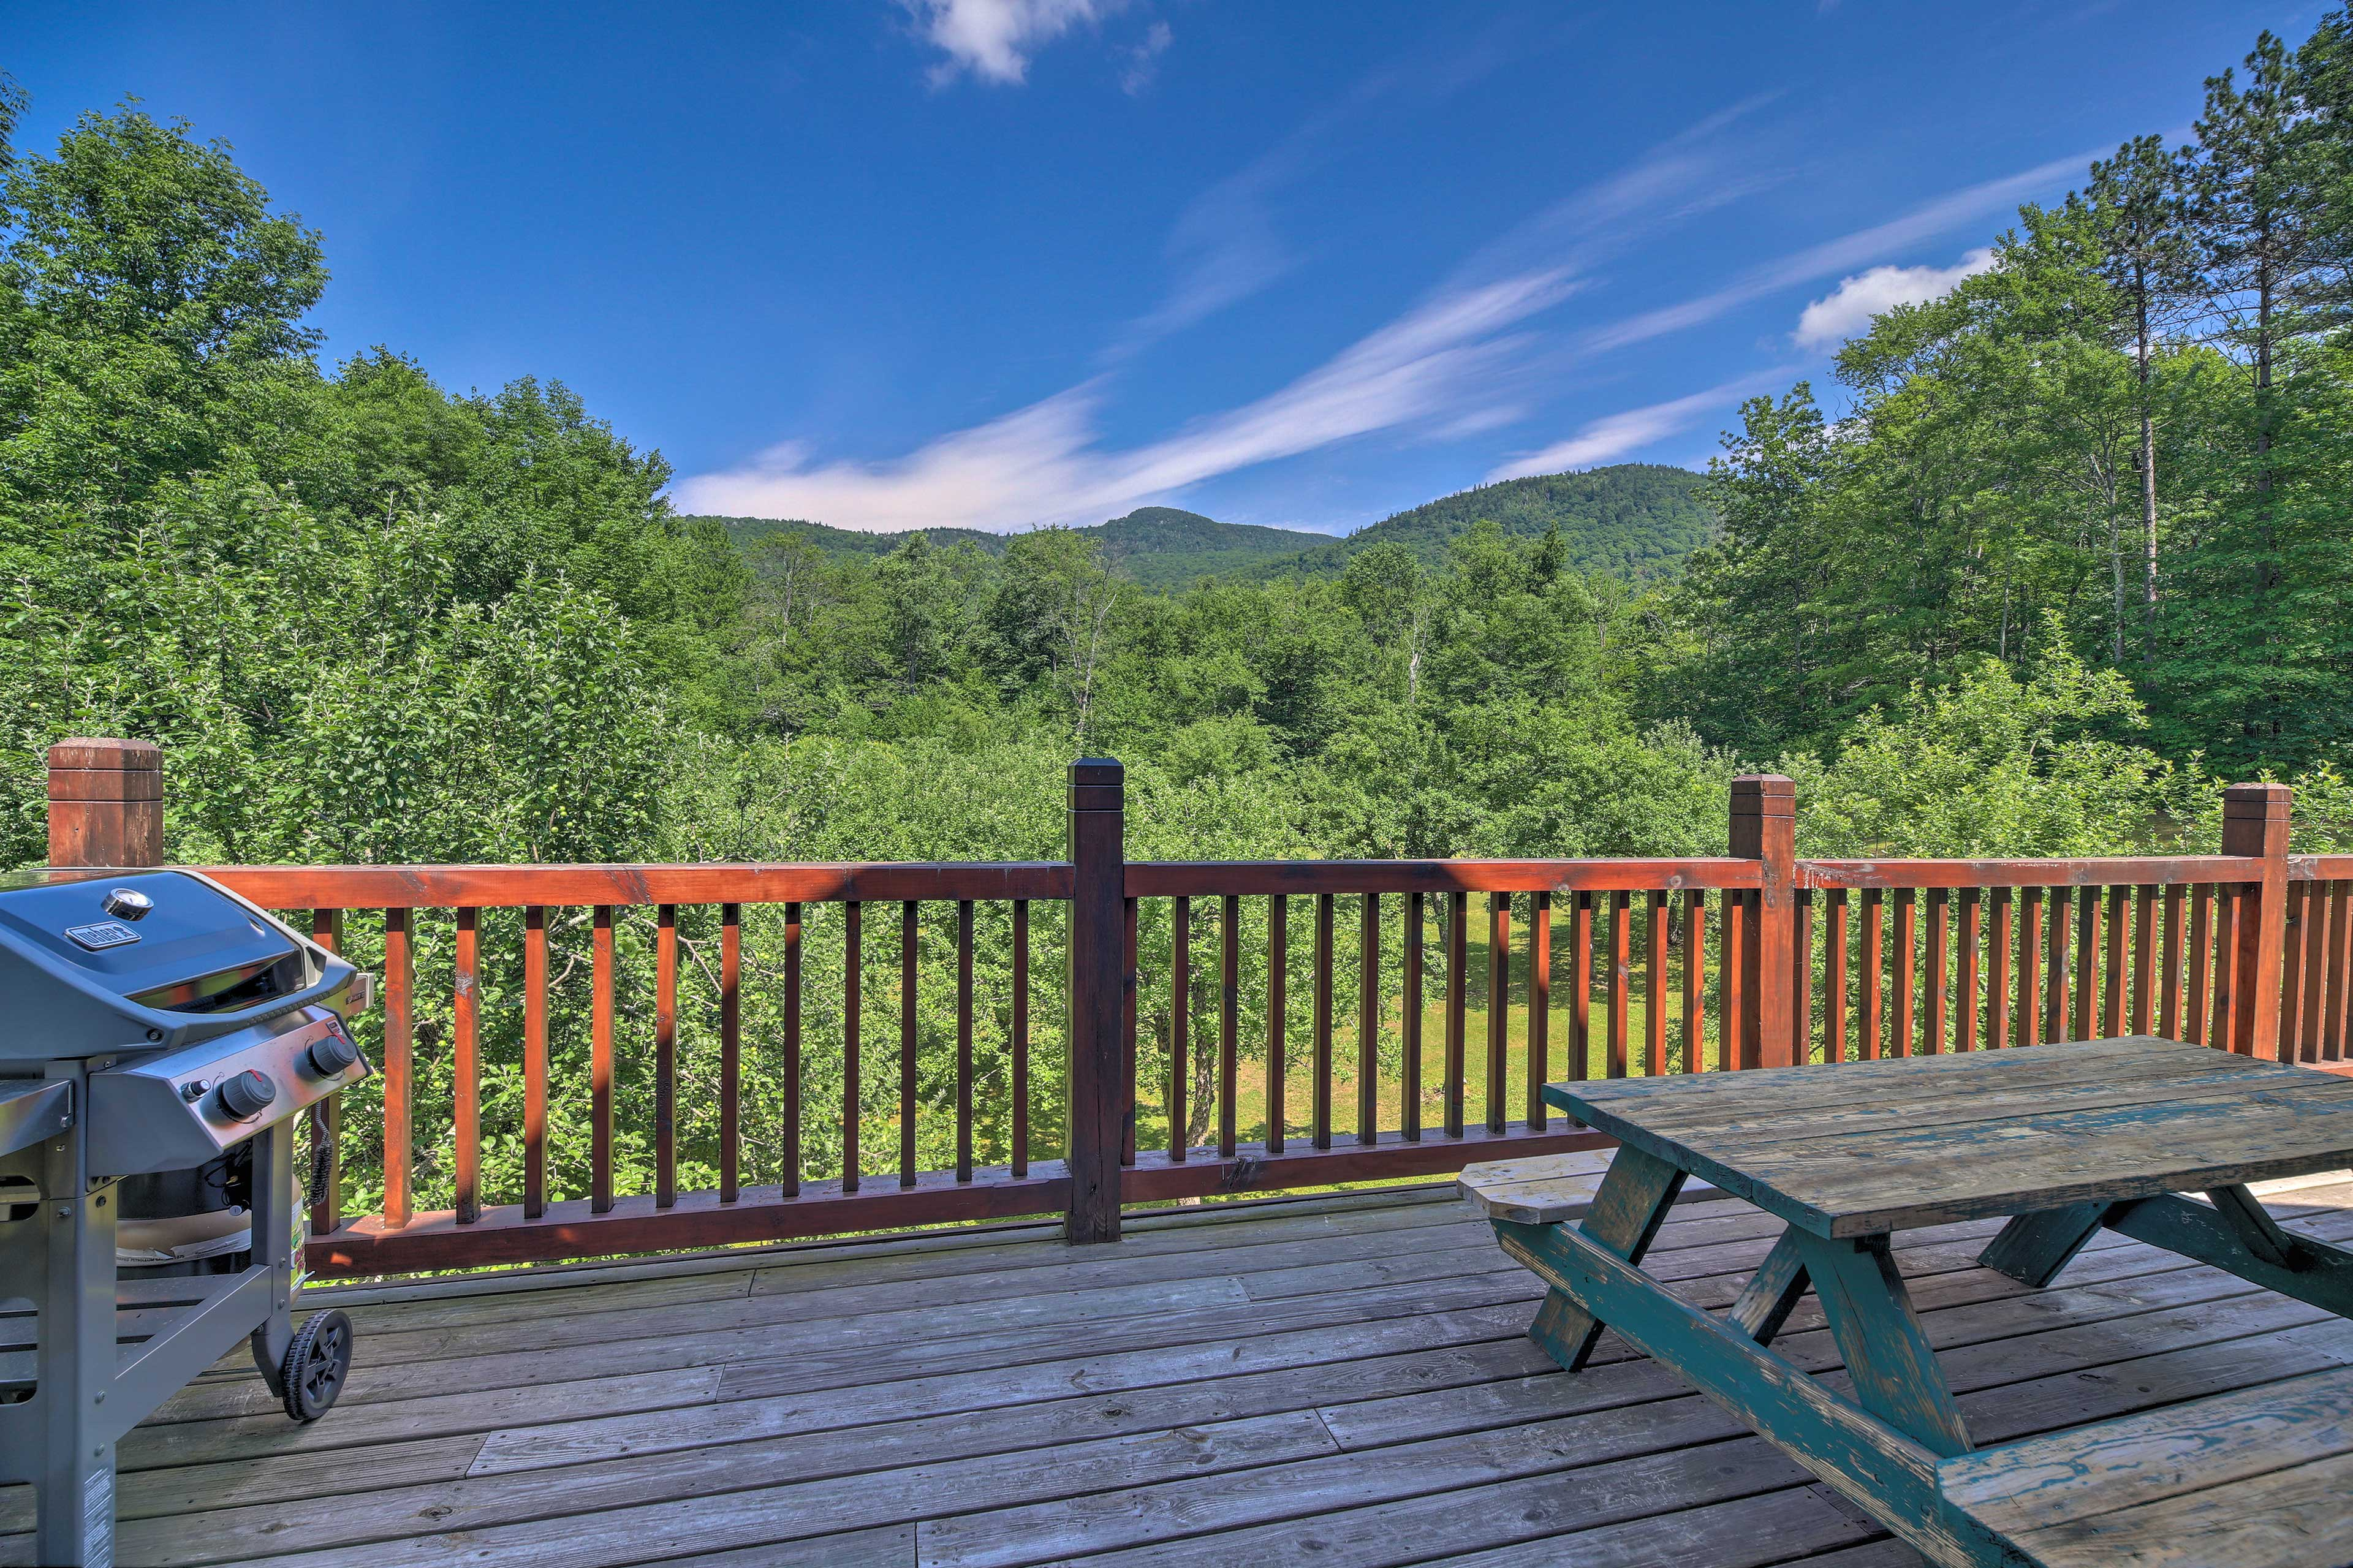 Enjoy barbecuing next to these views!